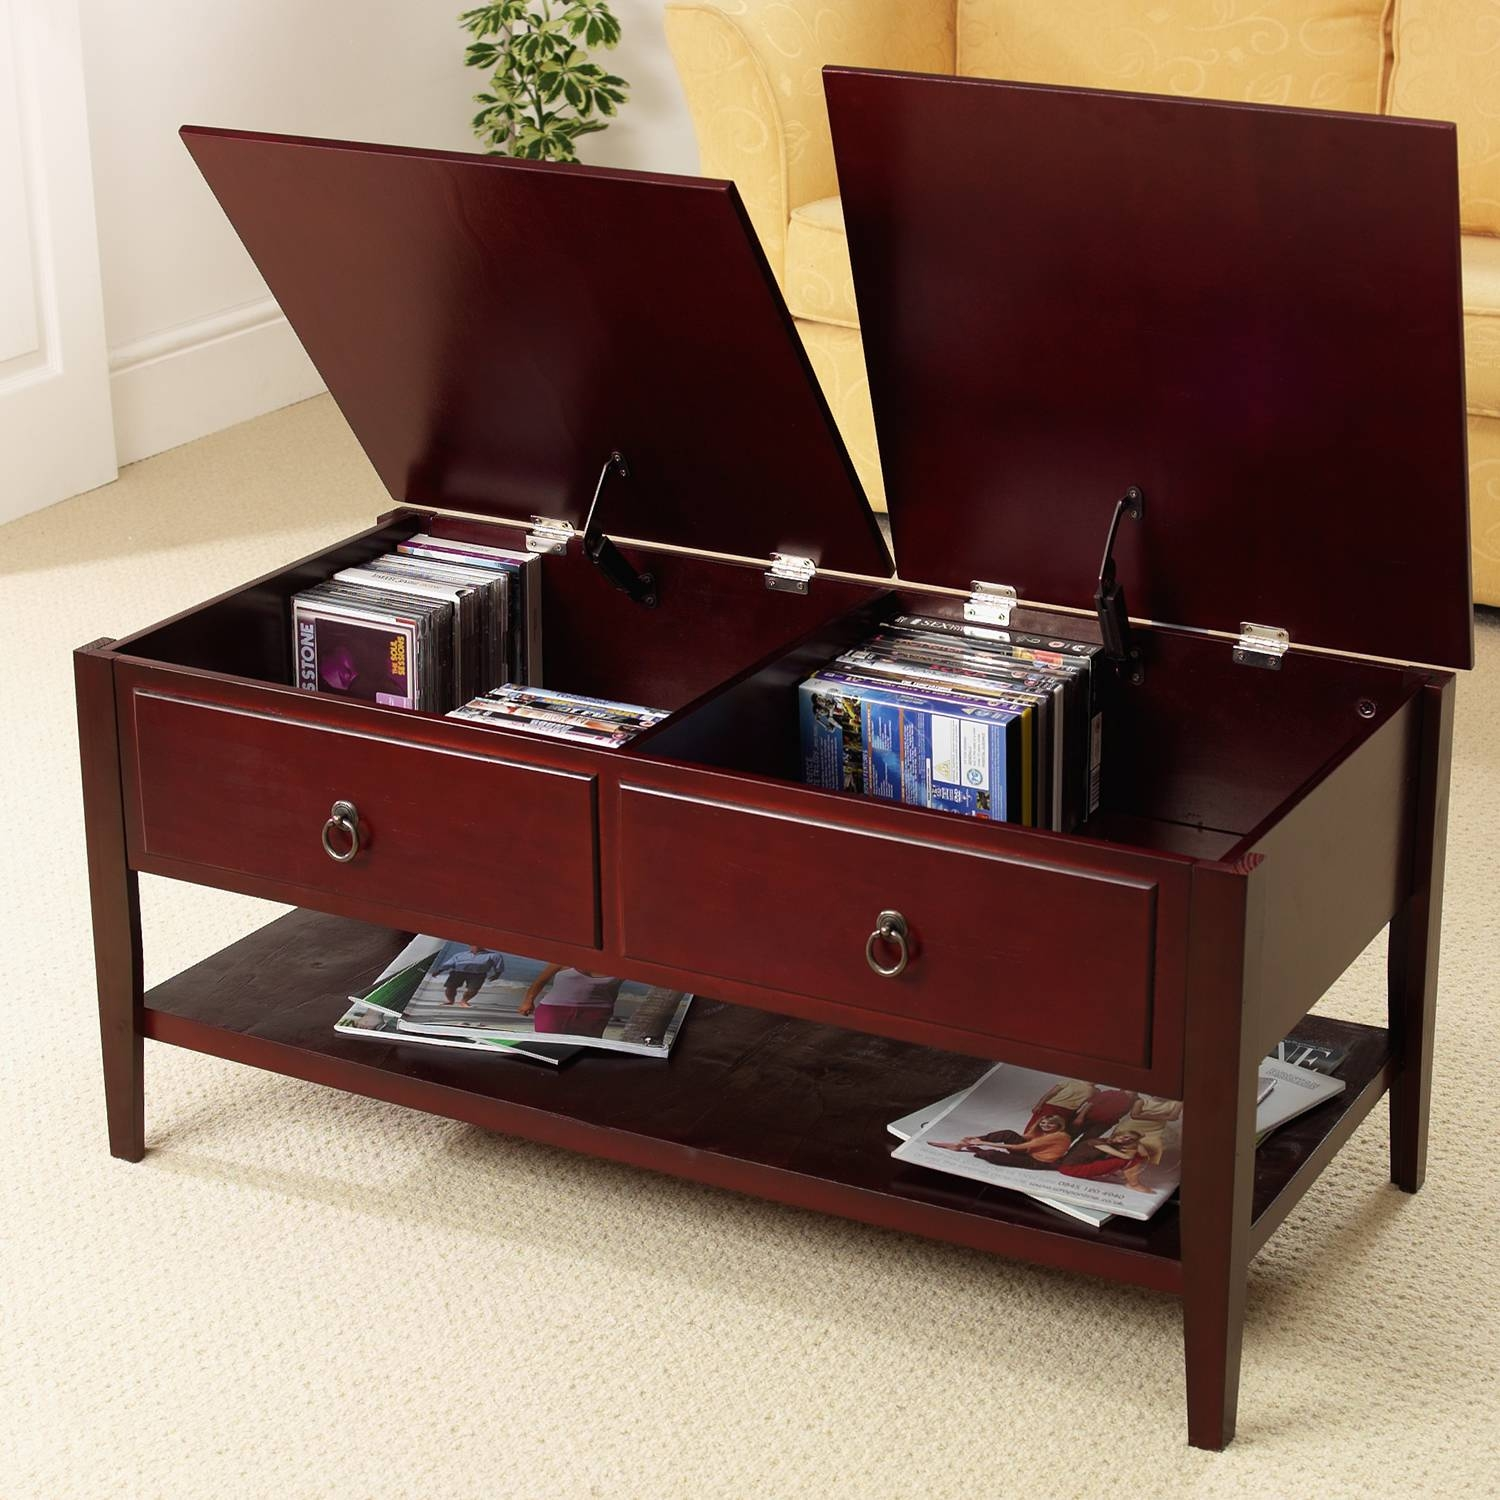 Coffee Tables Ideas: Impressive Coffee Table Storage Trunk Storage for Coffee Tables With Storage (Image 12 of 30)